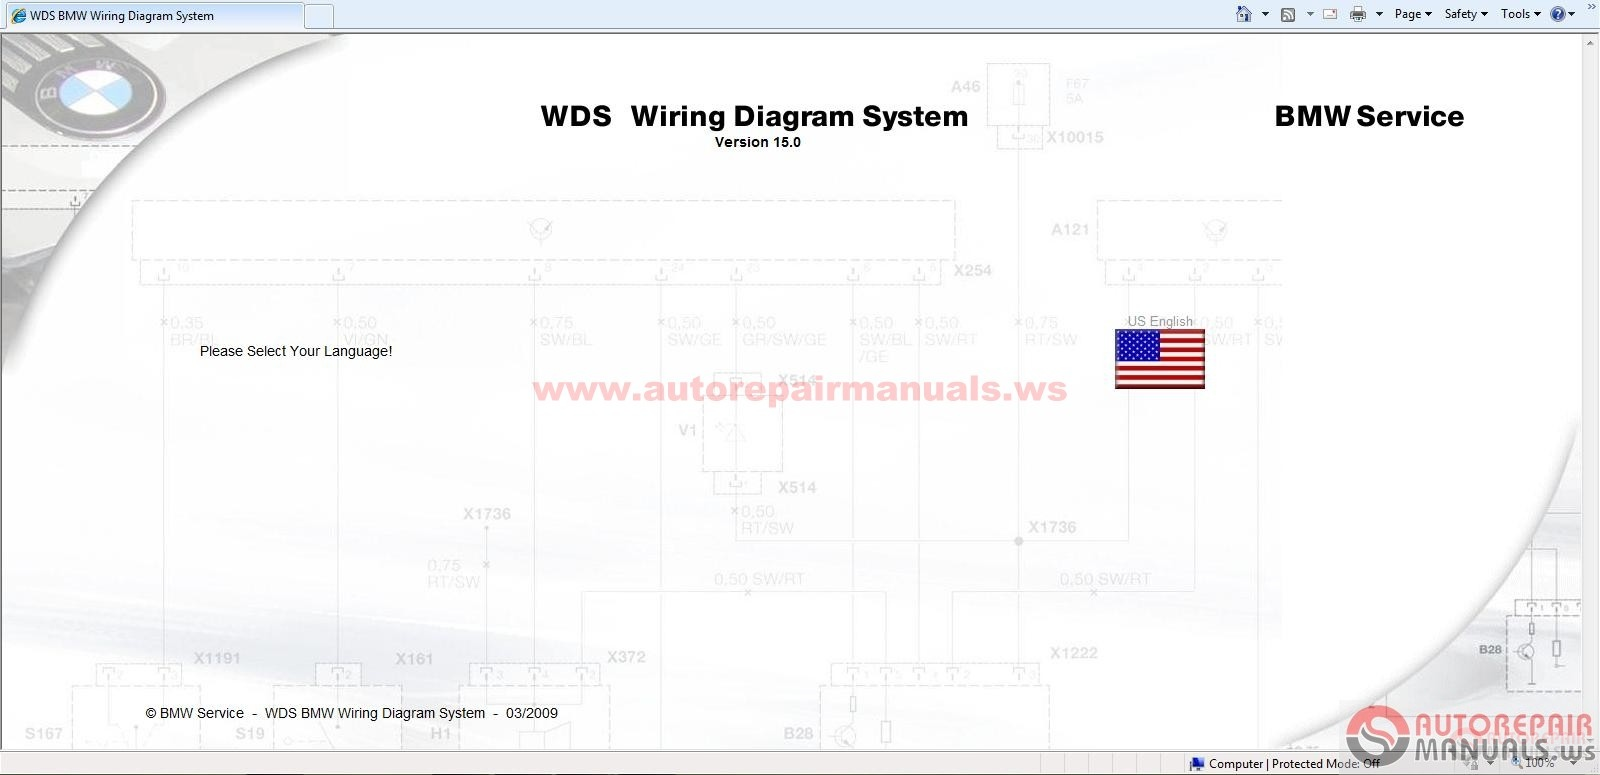 Freeautoepcservice  Bmw Wds V15 And Mini Wds V7 Wiring